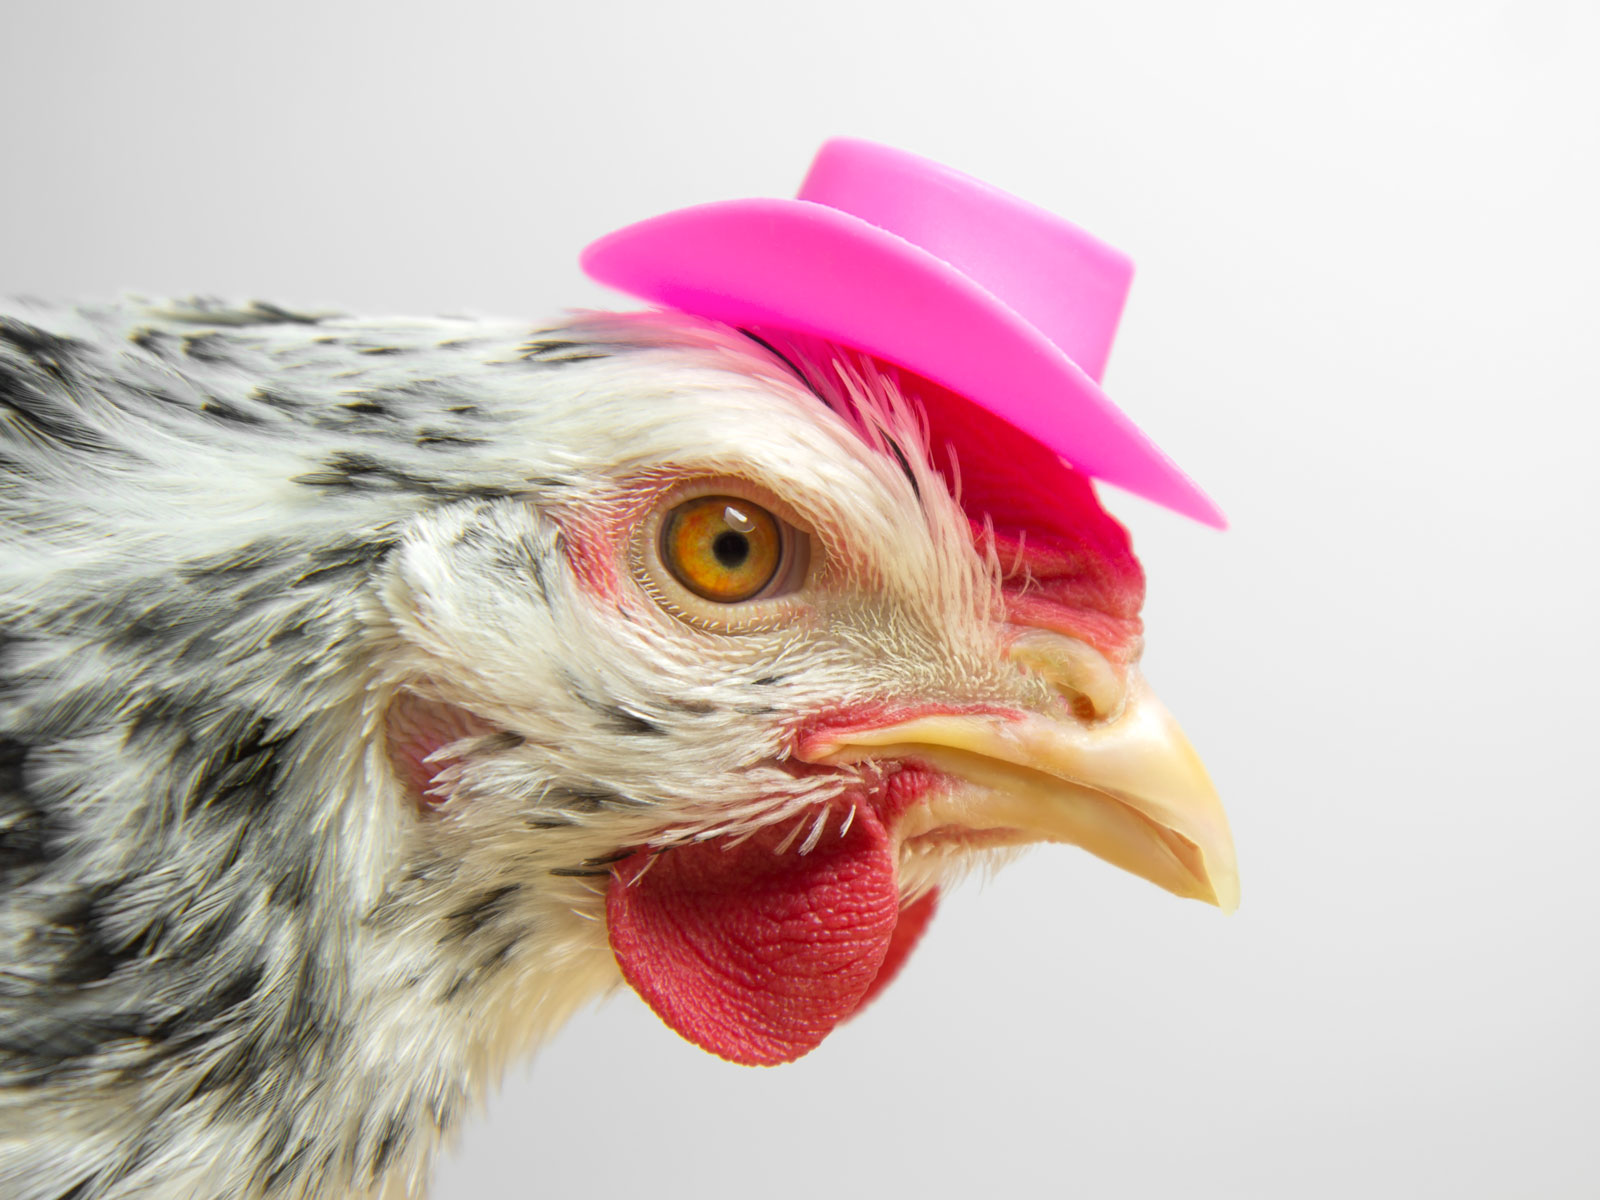 Go Ahead and Put Your Chickens in a Halloween Costume, CDC Says